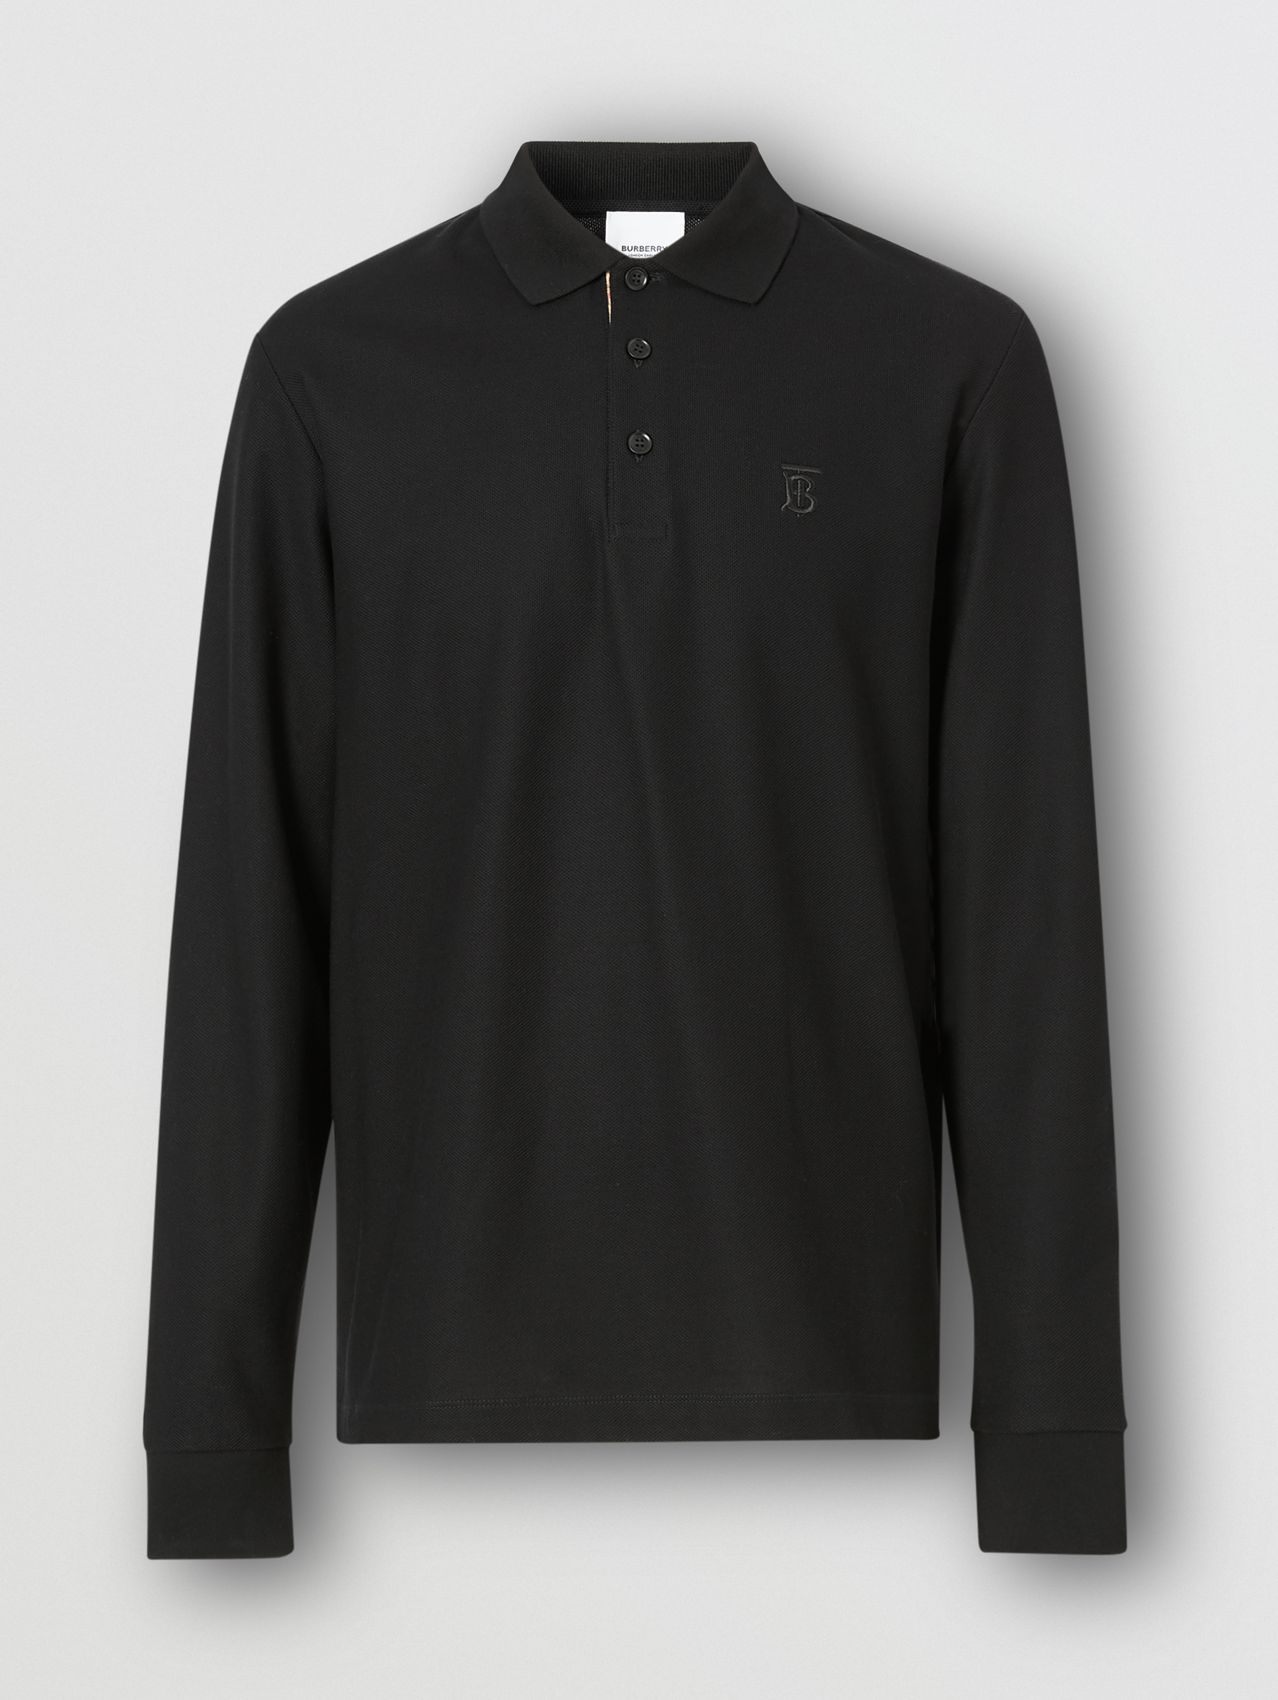 Long-sleeve Monogram Motif Cotton Piqué Polo Shirt in Black